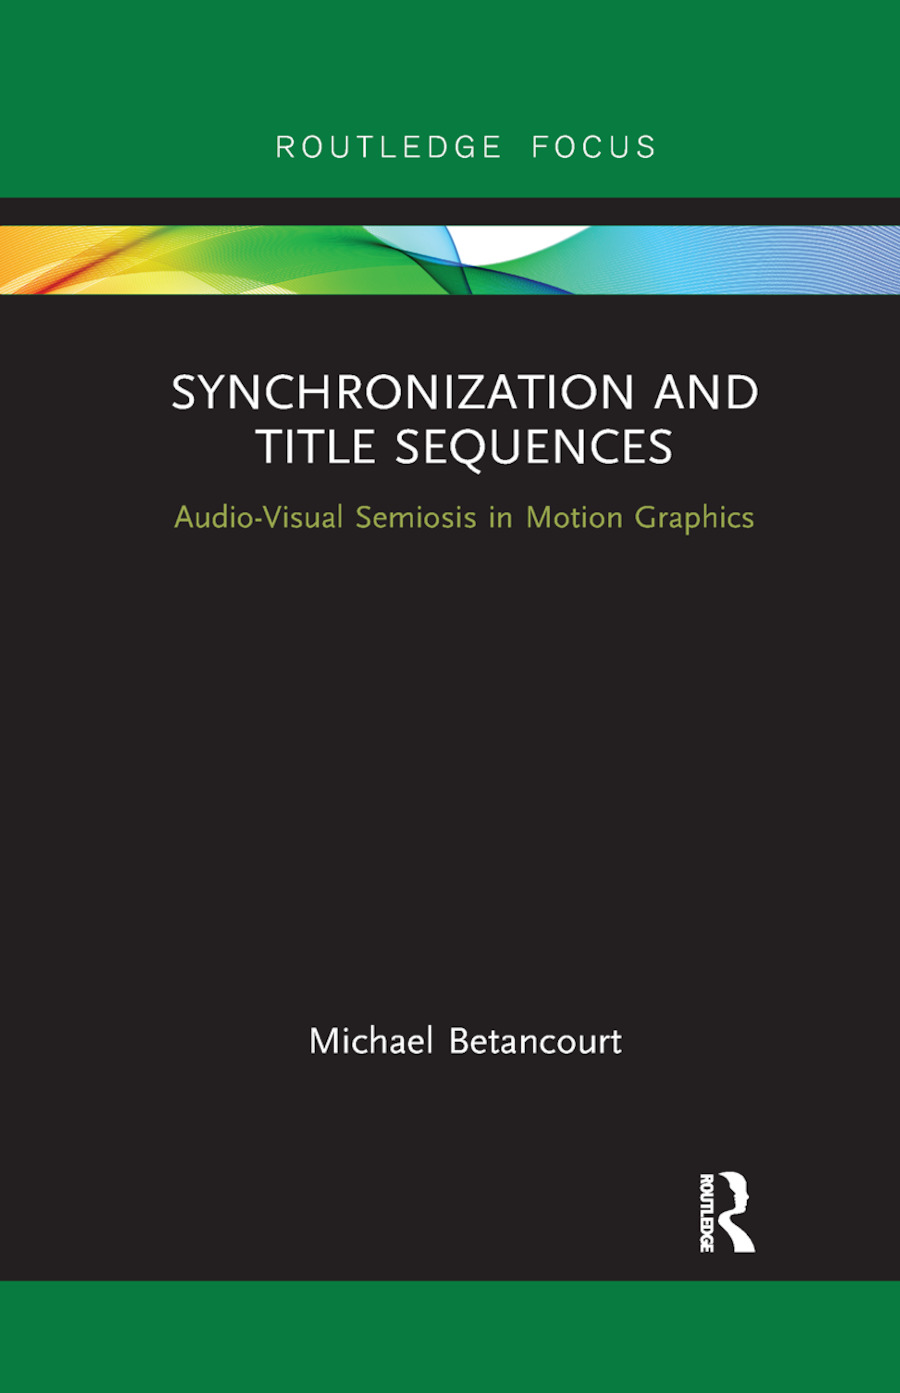 Synchronization and Title Sequences: Audio-Visual Semiosis in Motion Graphics book cover